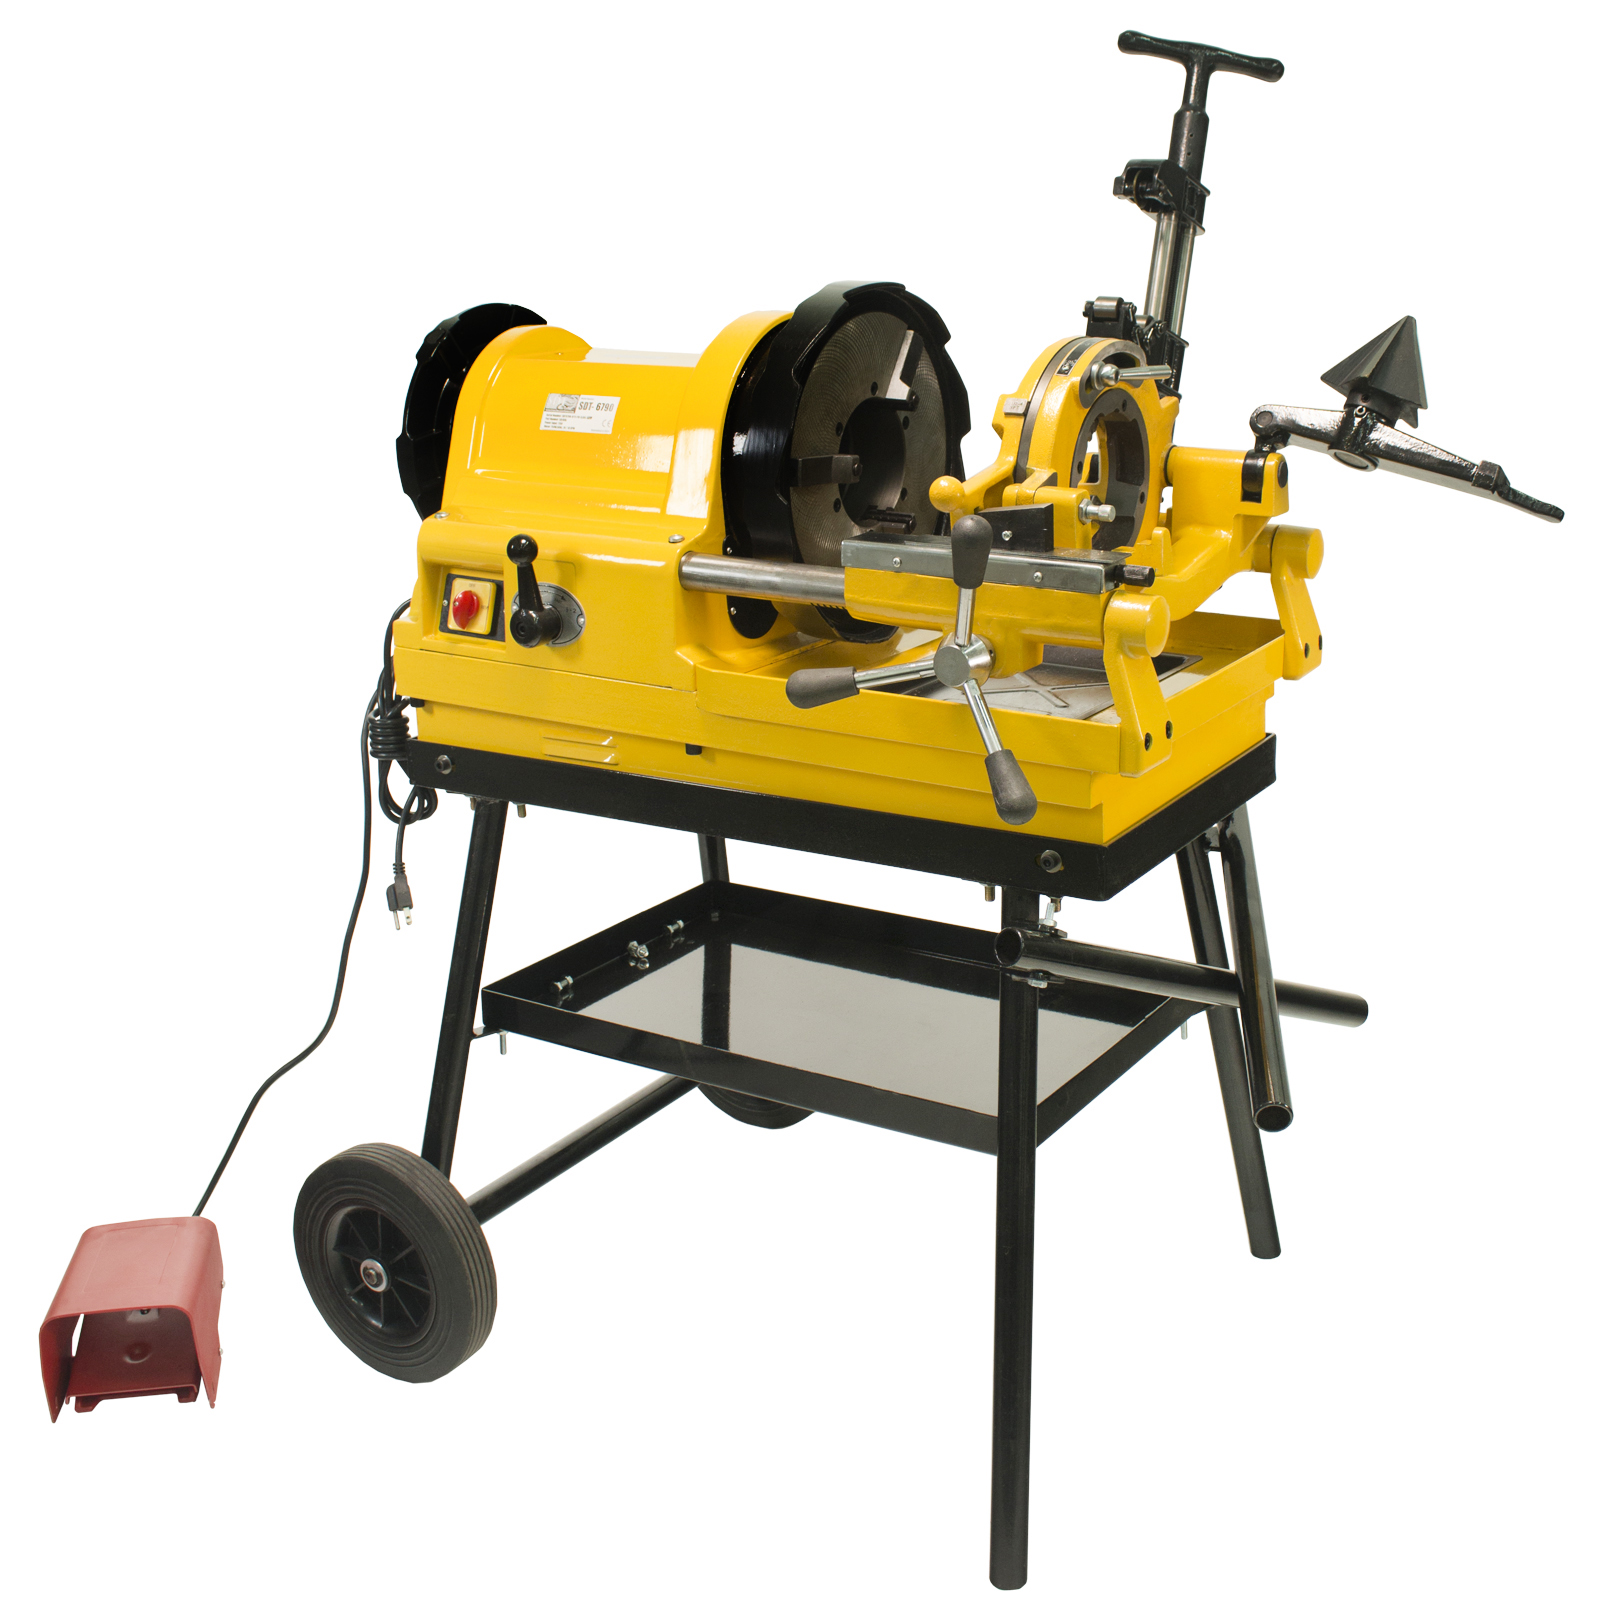 Steel Dragon Tools®  6790 Power Pipe Threader Threading Machine 1/2in. - 4in. Capacity with Foot Switch Self-Oiling Die Head and Cart